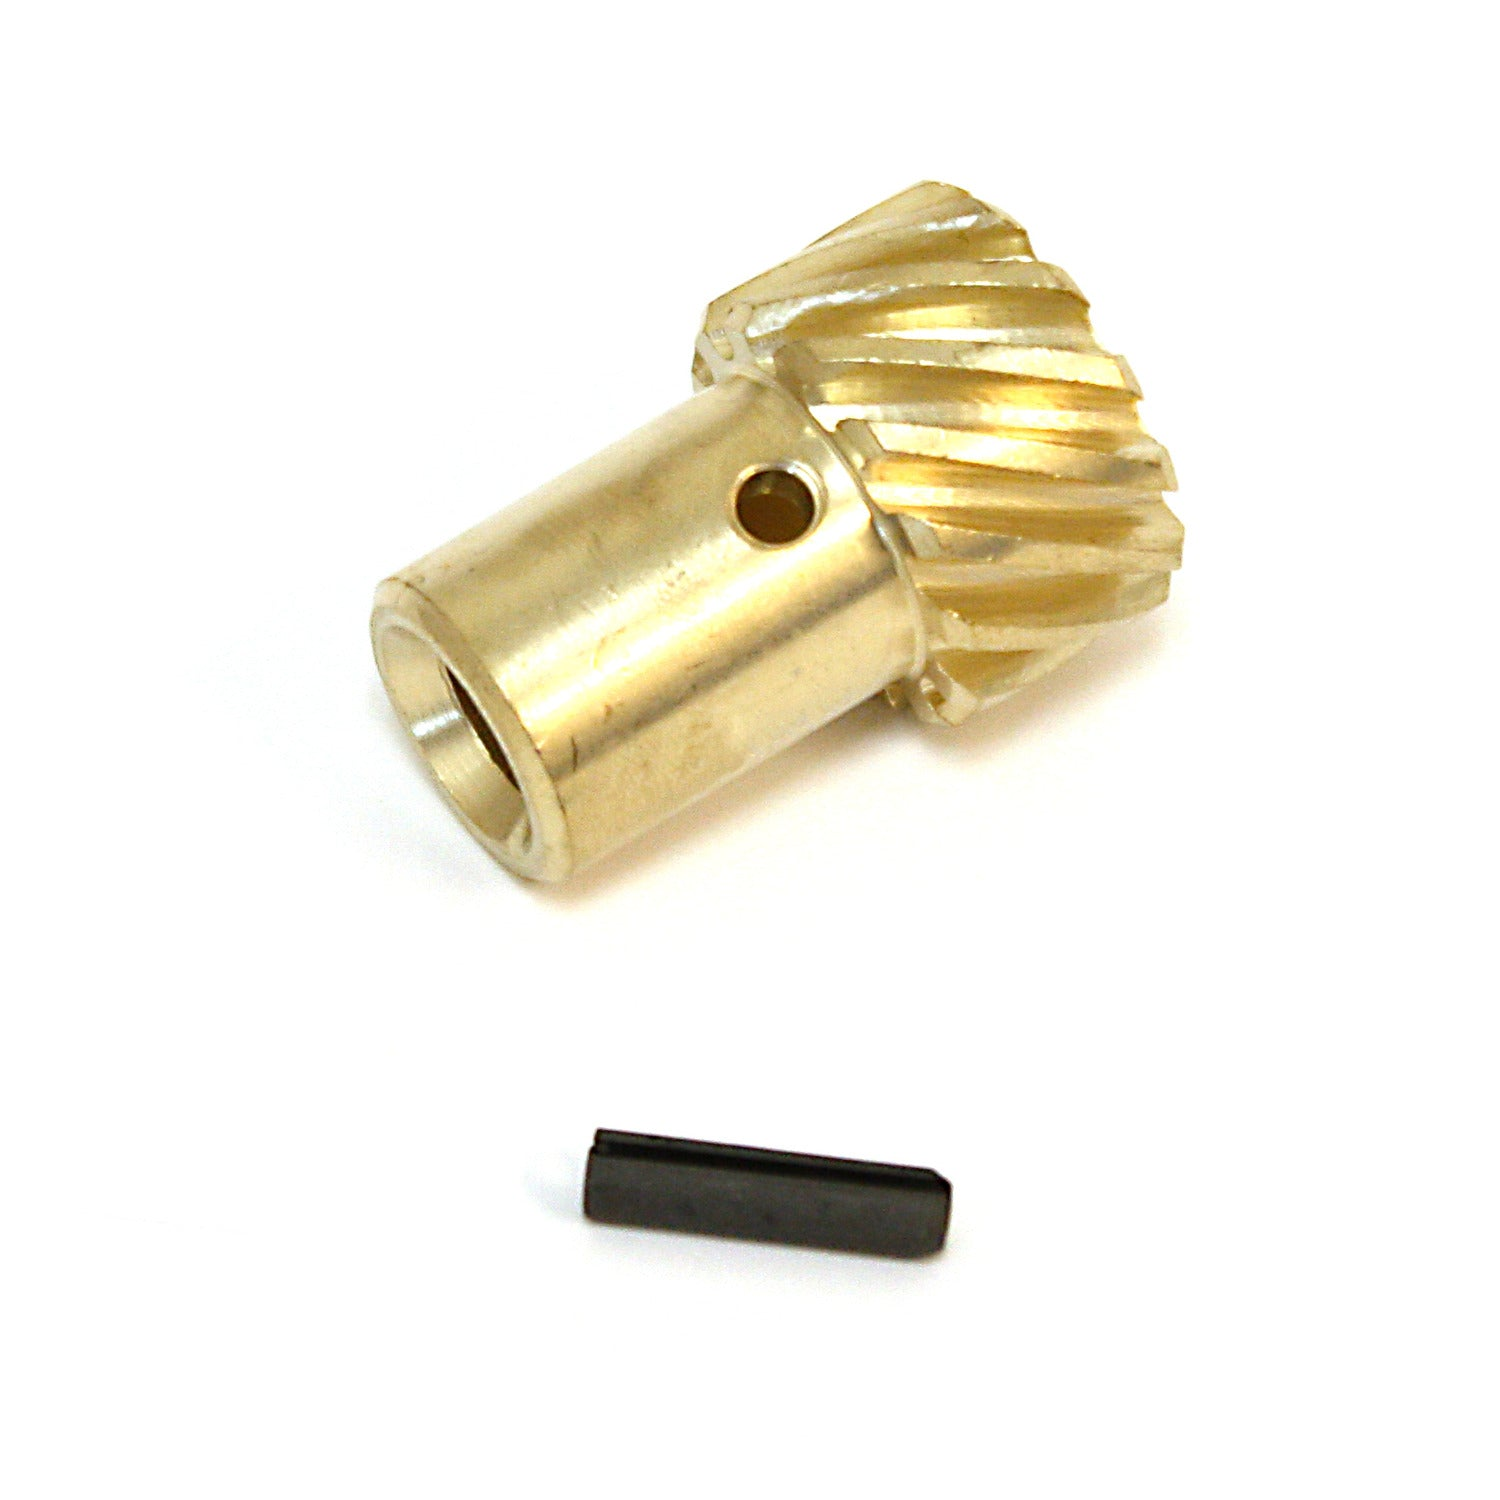 PerTronix D671001 Gear Bronze Chevrolet for 0.500 Inch Distributor Shaft